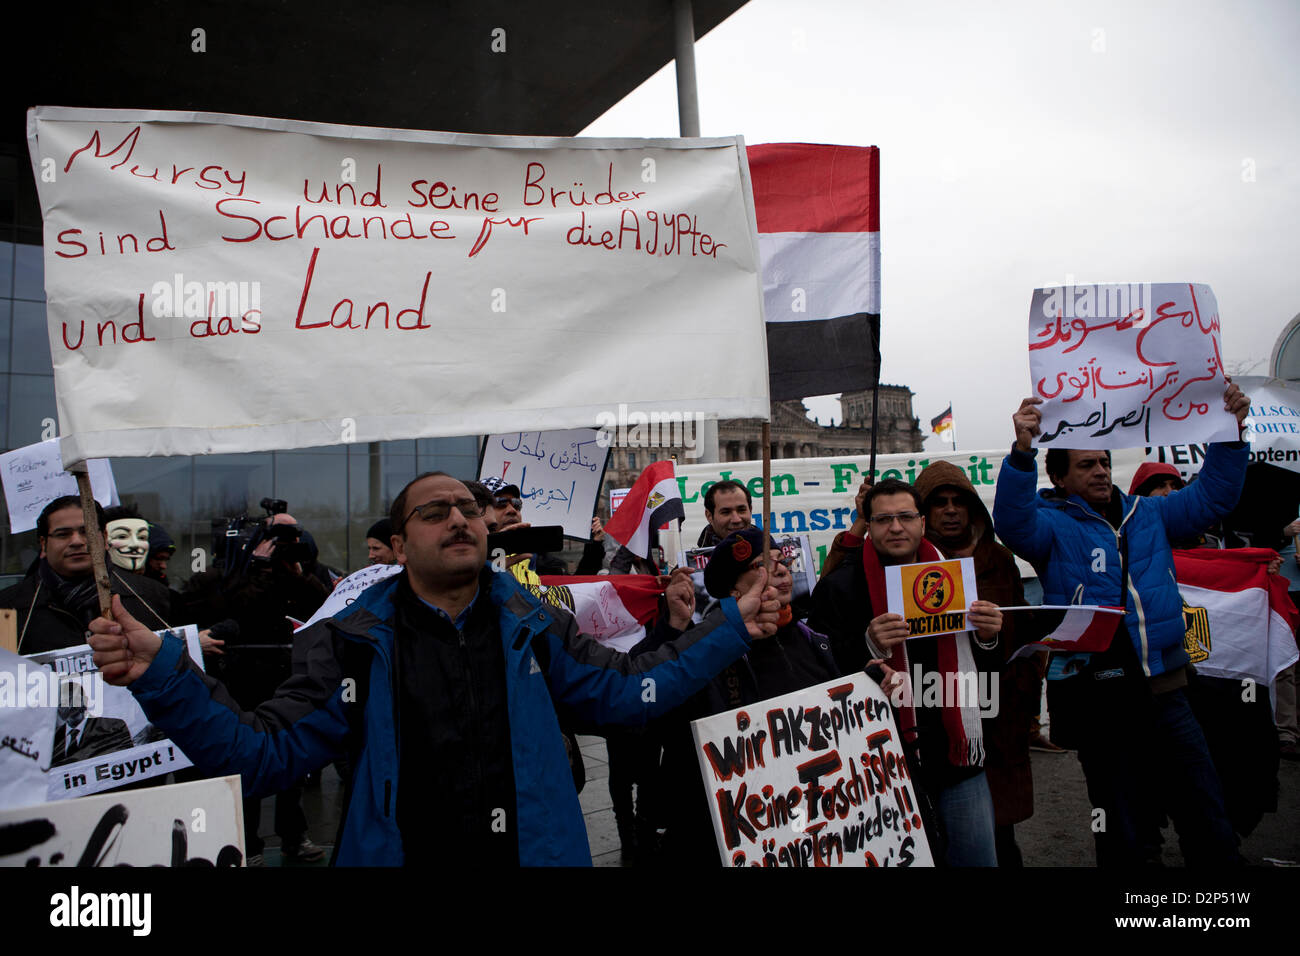 Berlin, Germany. 30th January 2013. Protests in front of the German chancellery during the visit of Egypts President - Stock Image